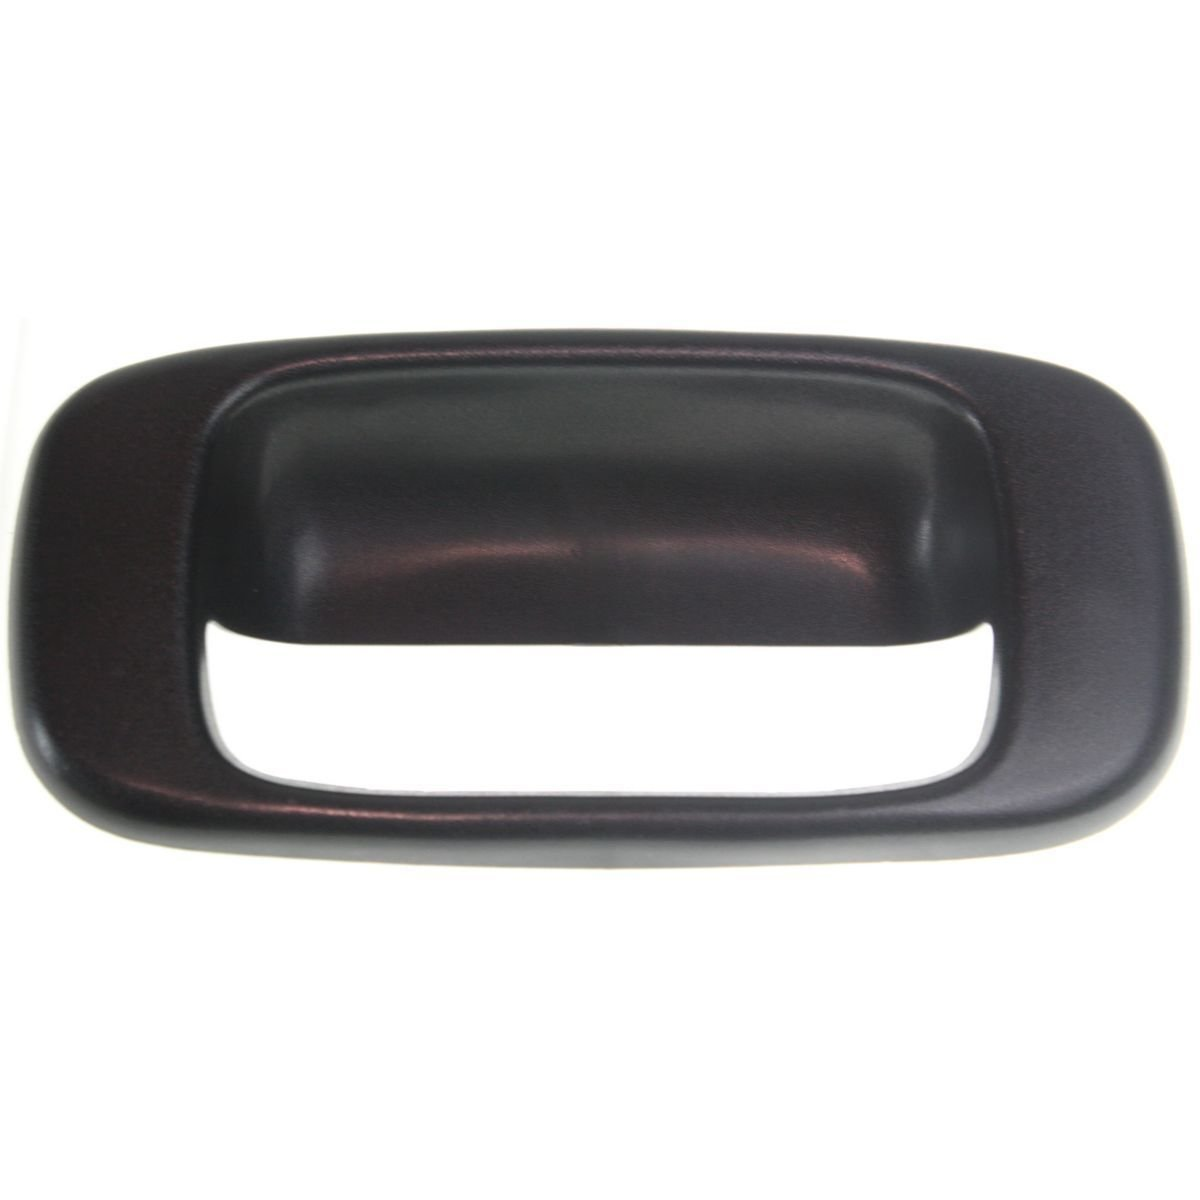 Diften 102-A2202-X01 - New Lots of 3 Tailgate Handle Bezel Outer Black Full Size Truck Chevy GM1916102